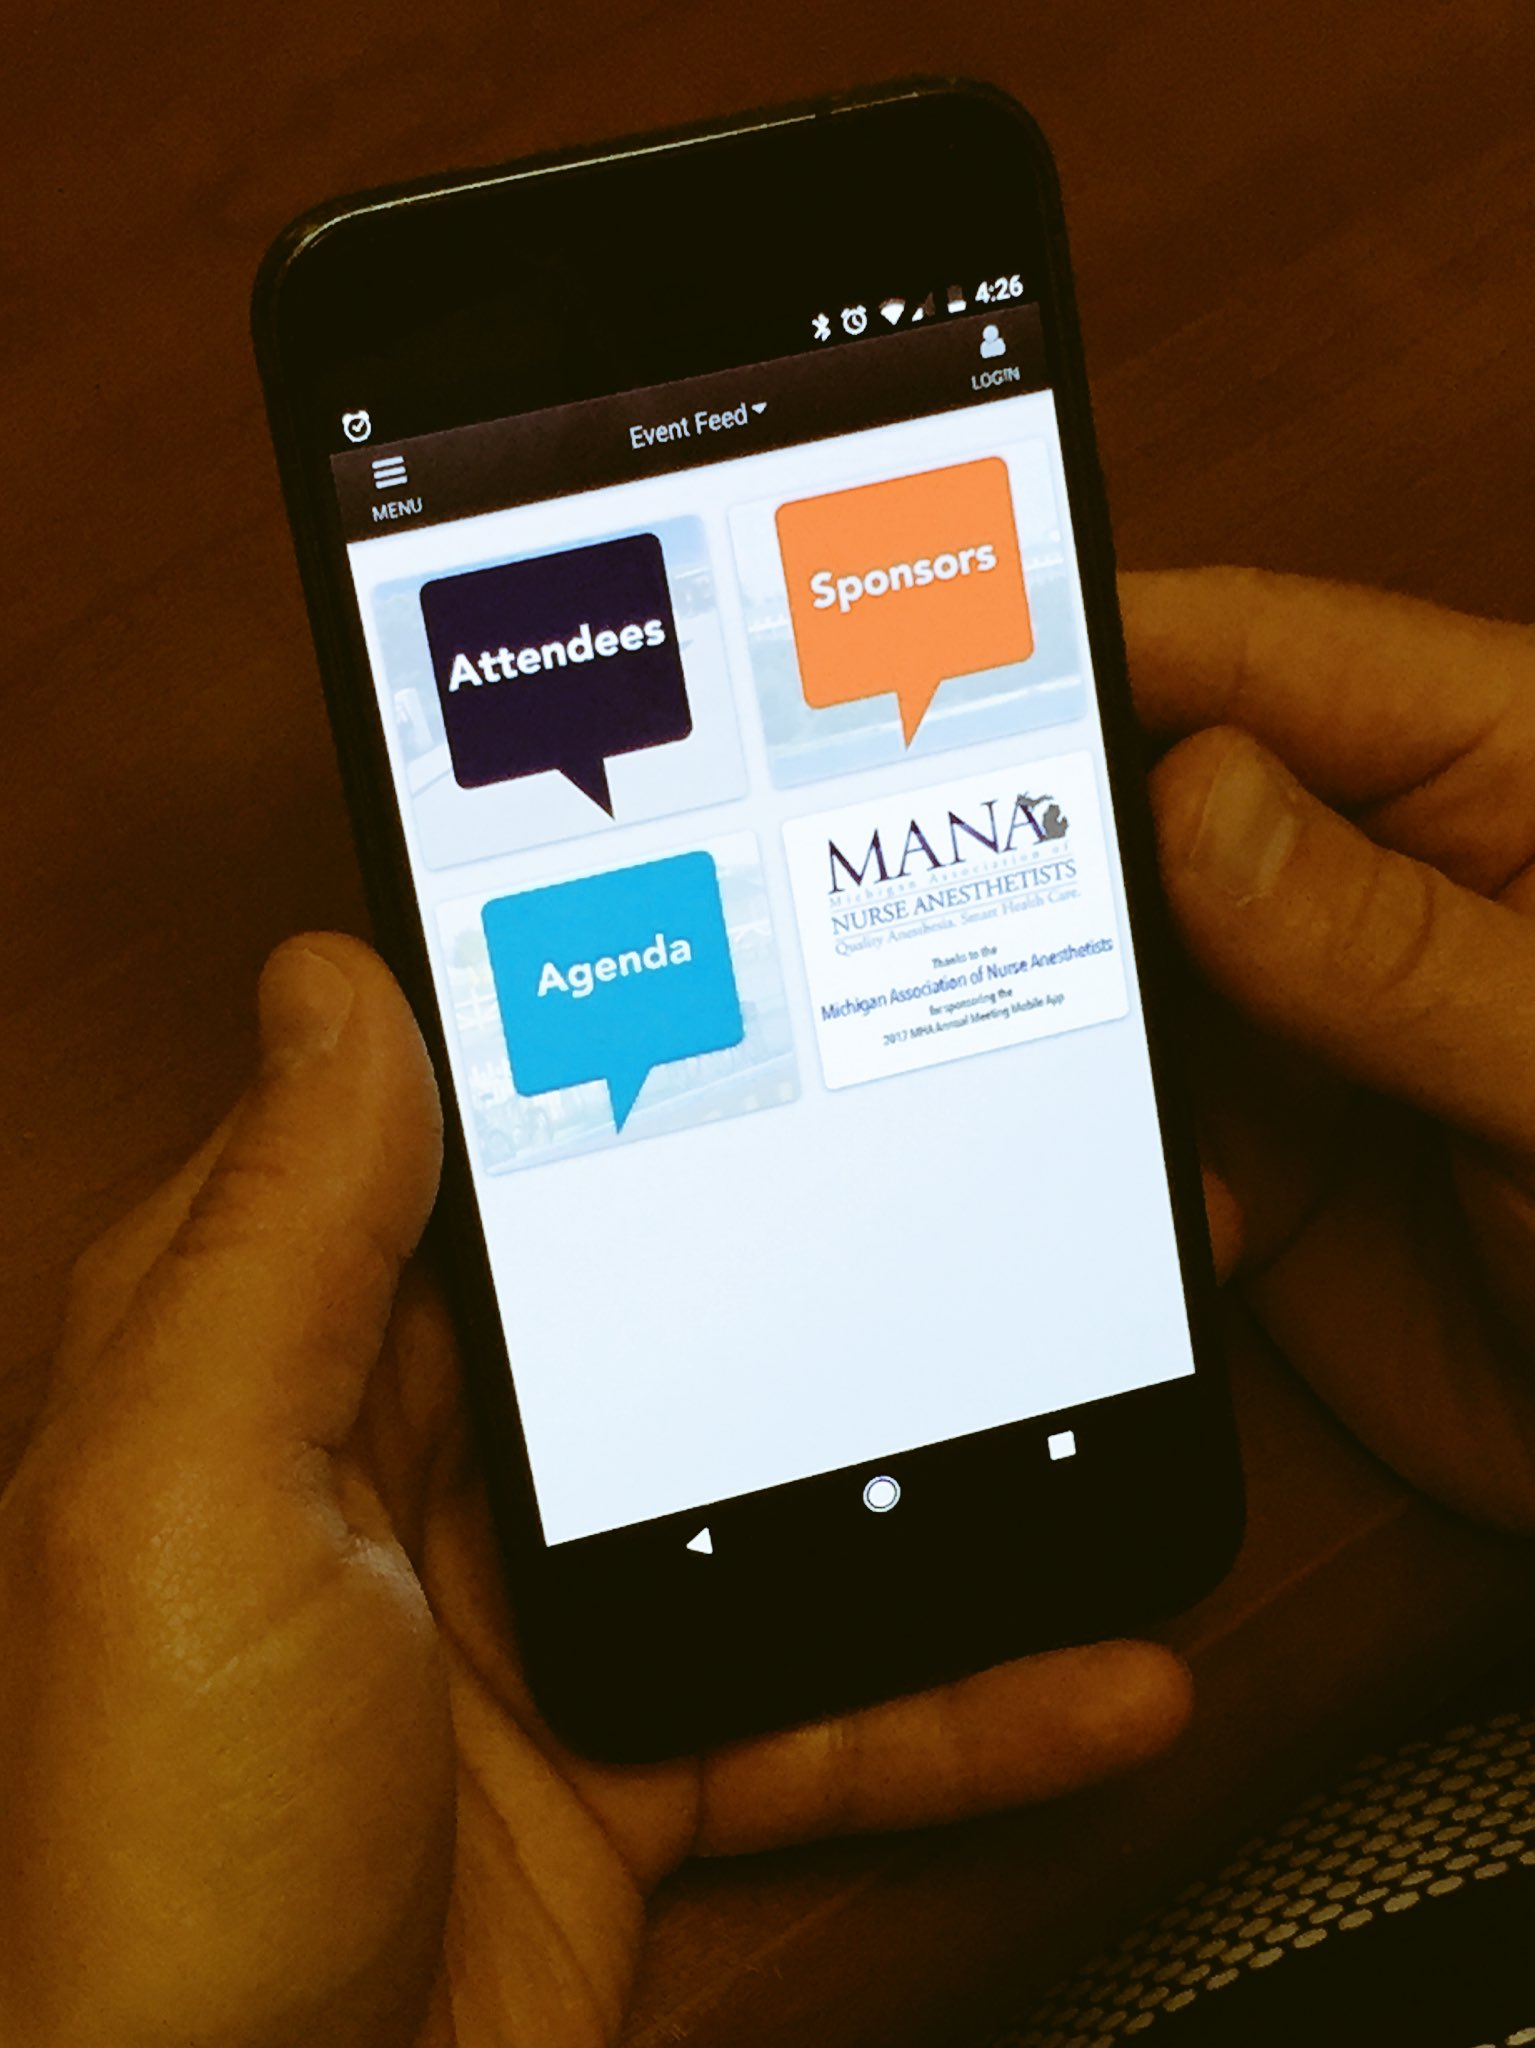 We're beginning the 1-week countdown to our #MHAannual Meeting! Have you downloaded the app yet? Get it here ➡️ https://t.co/GJQXFlMQm3 https://t.co/j4N2VTKlNv